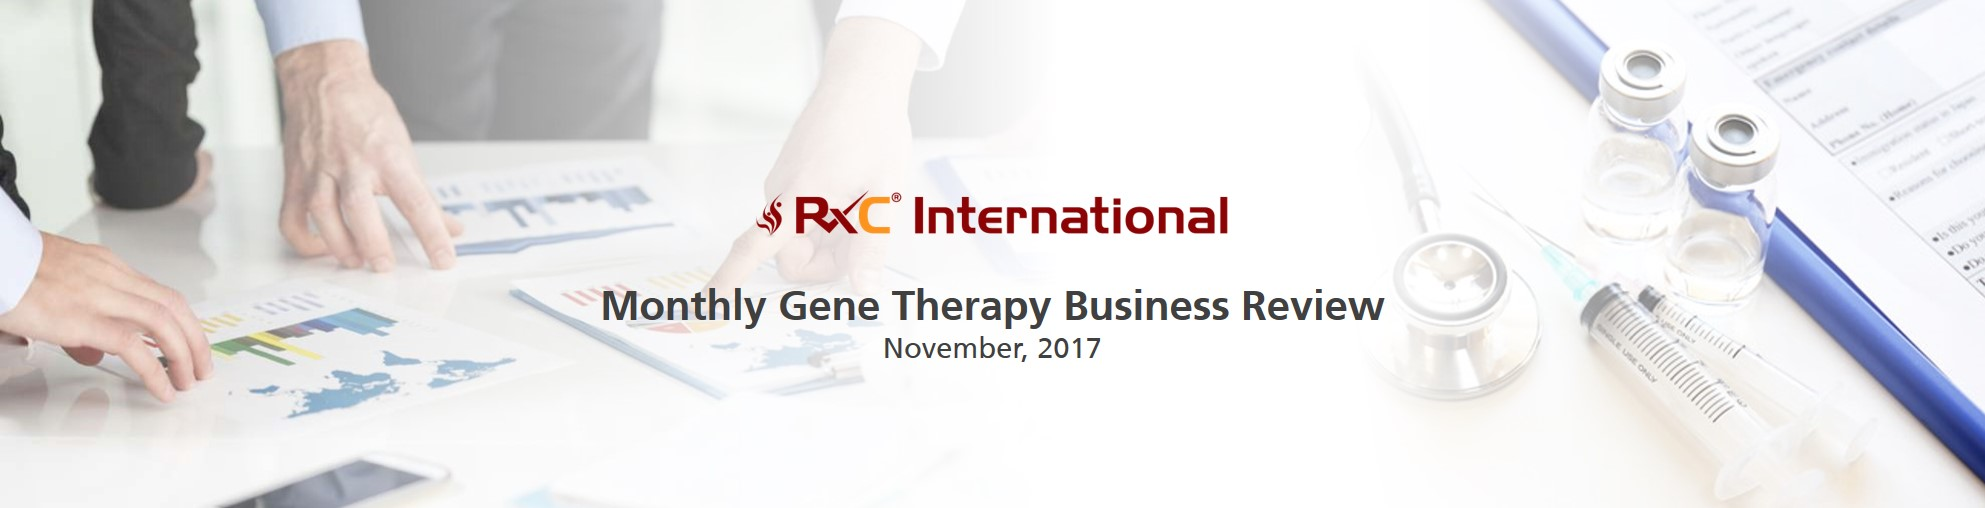 RxC International Gene Therapy Business Review November Newsletter